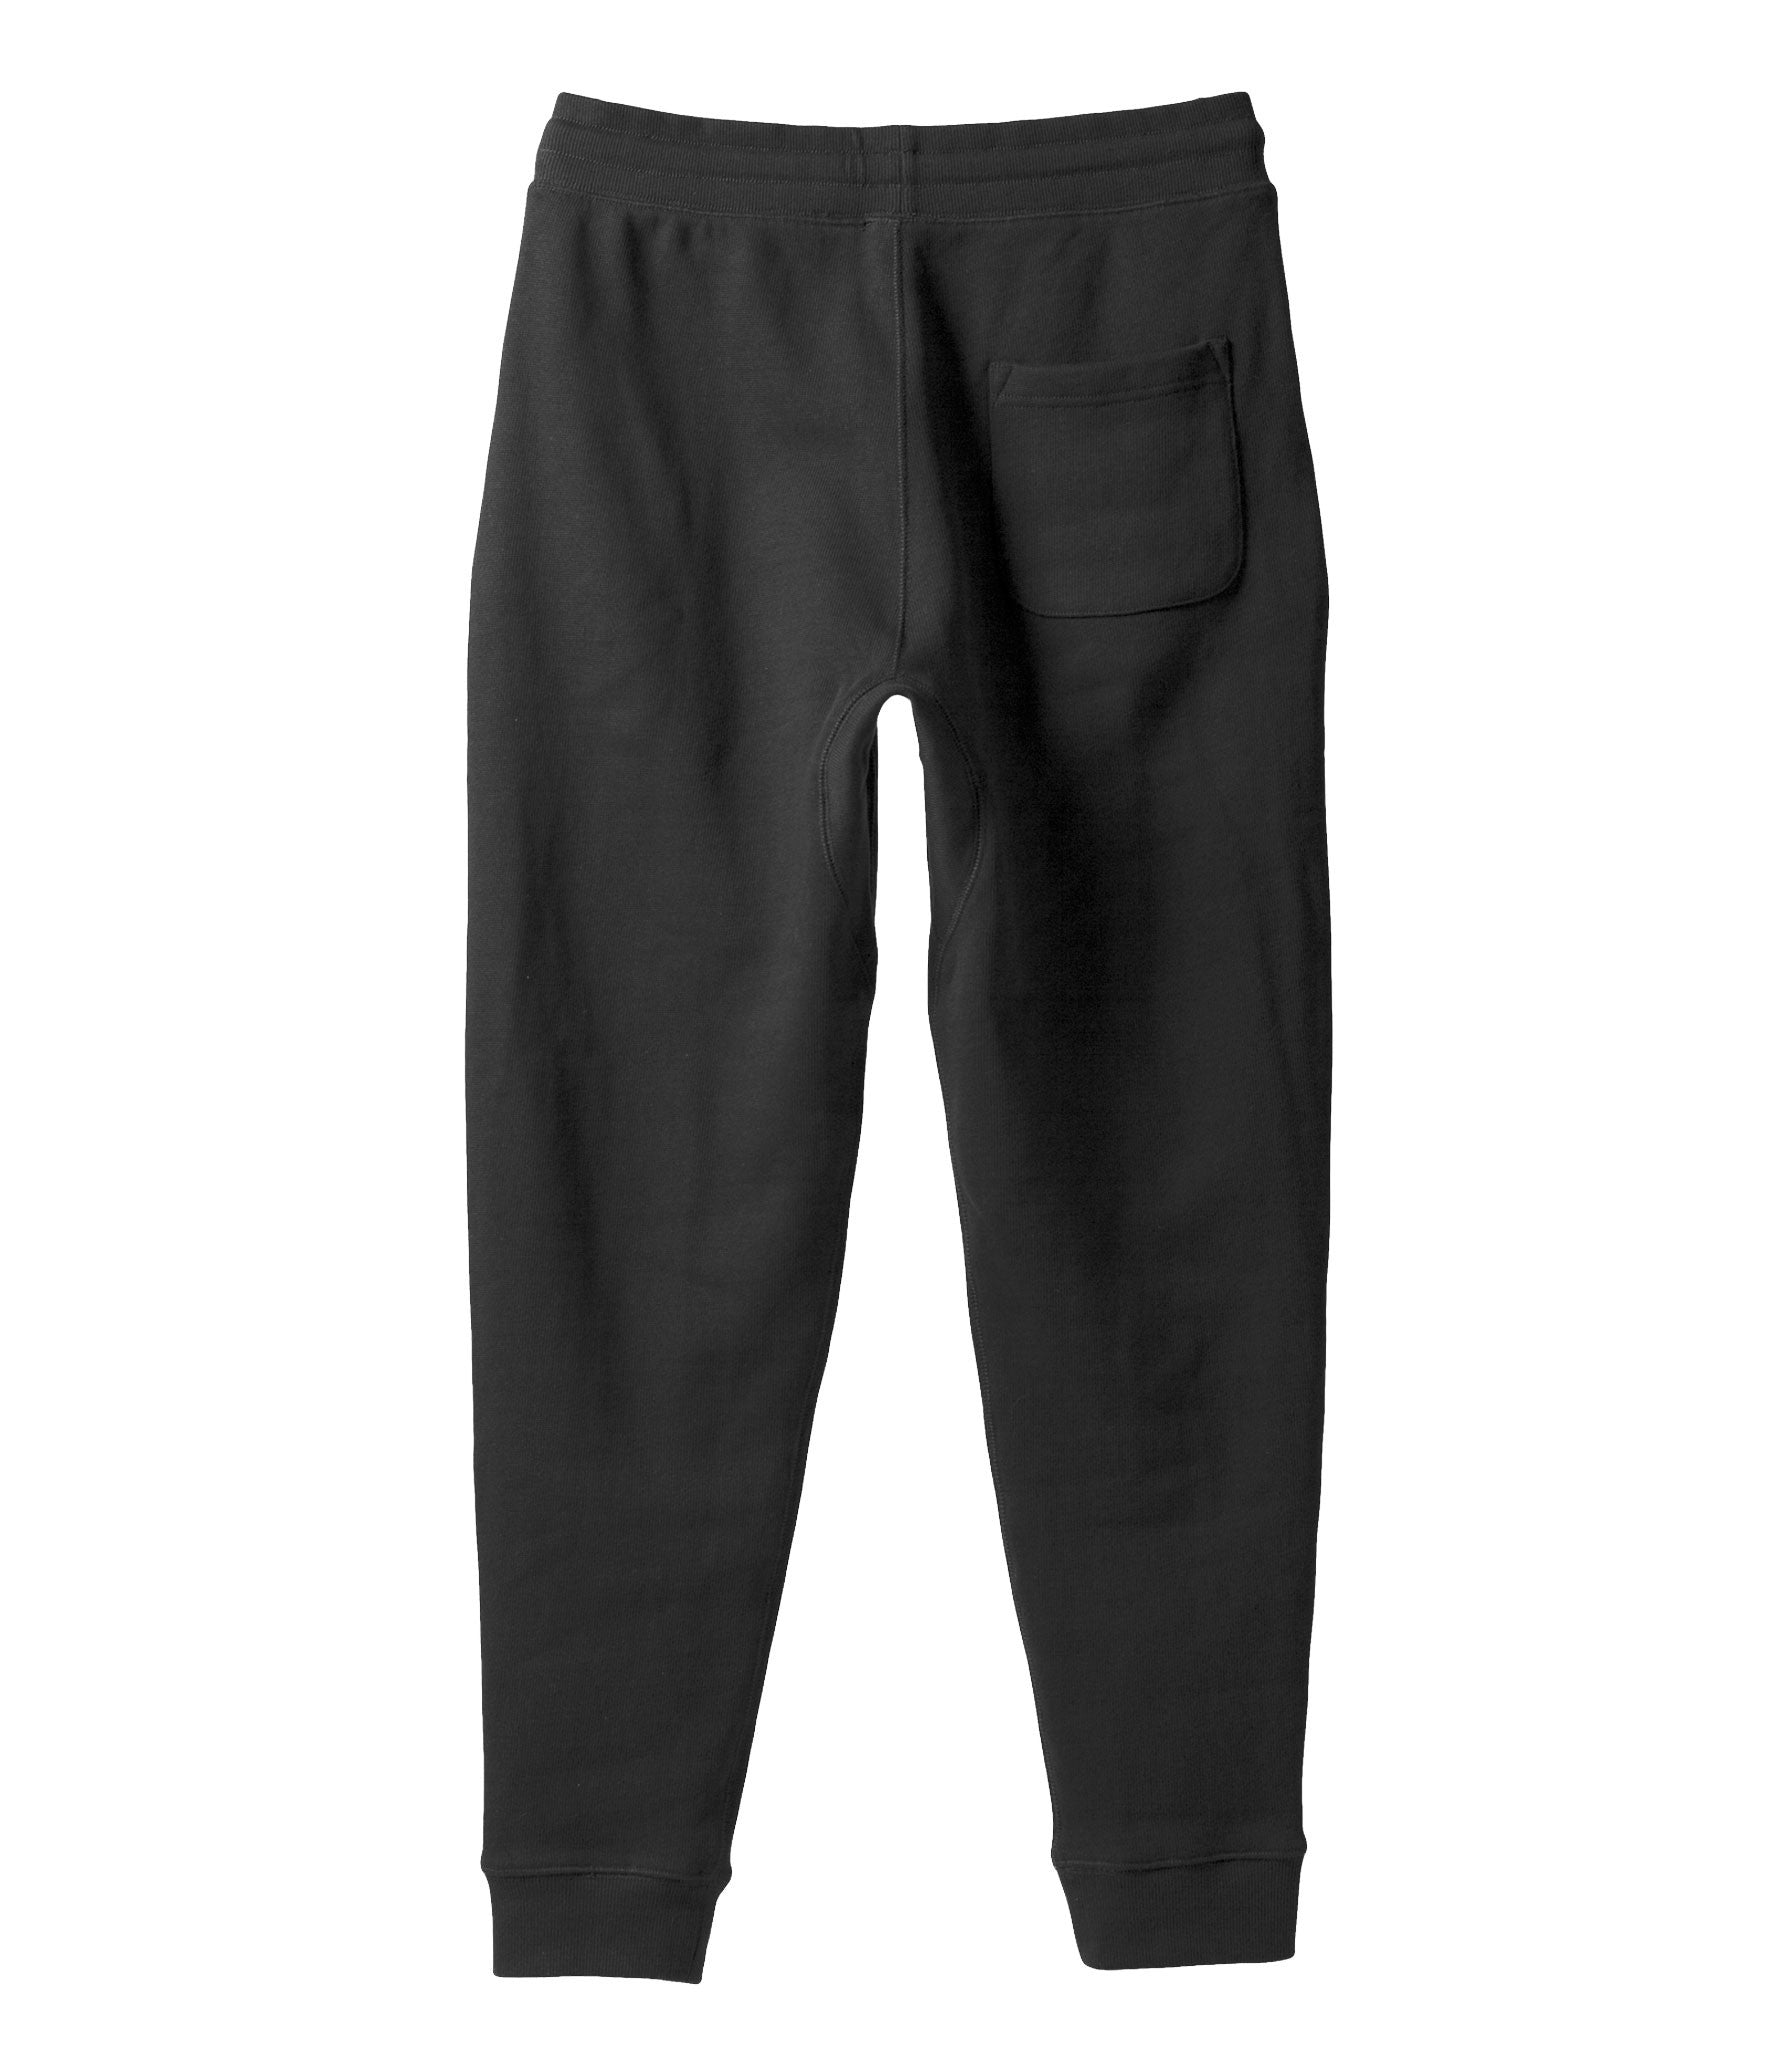 French Terry Sweatpant Charcoal NS1132-3